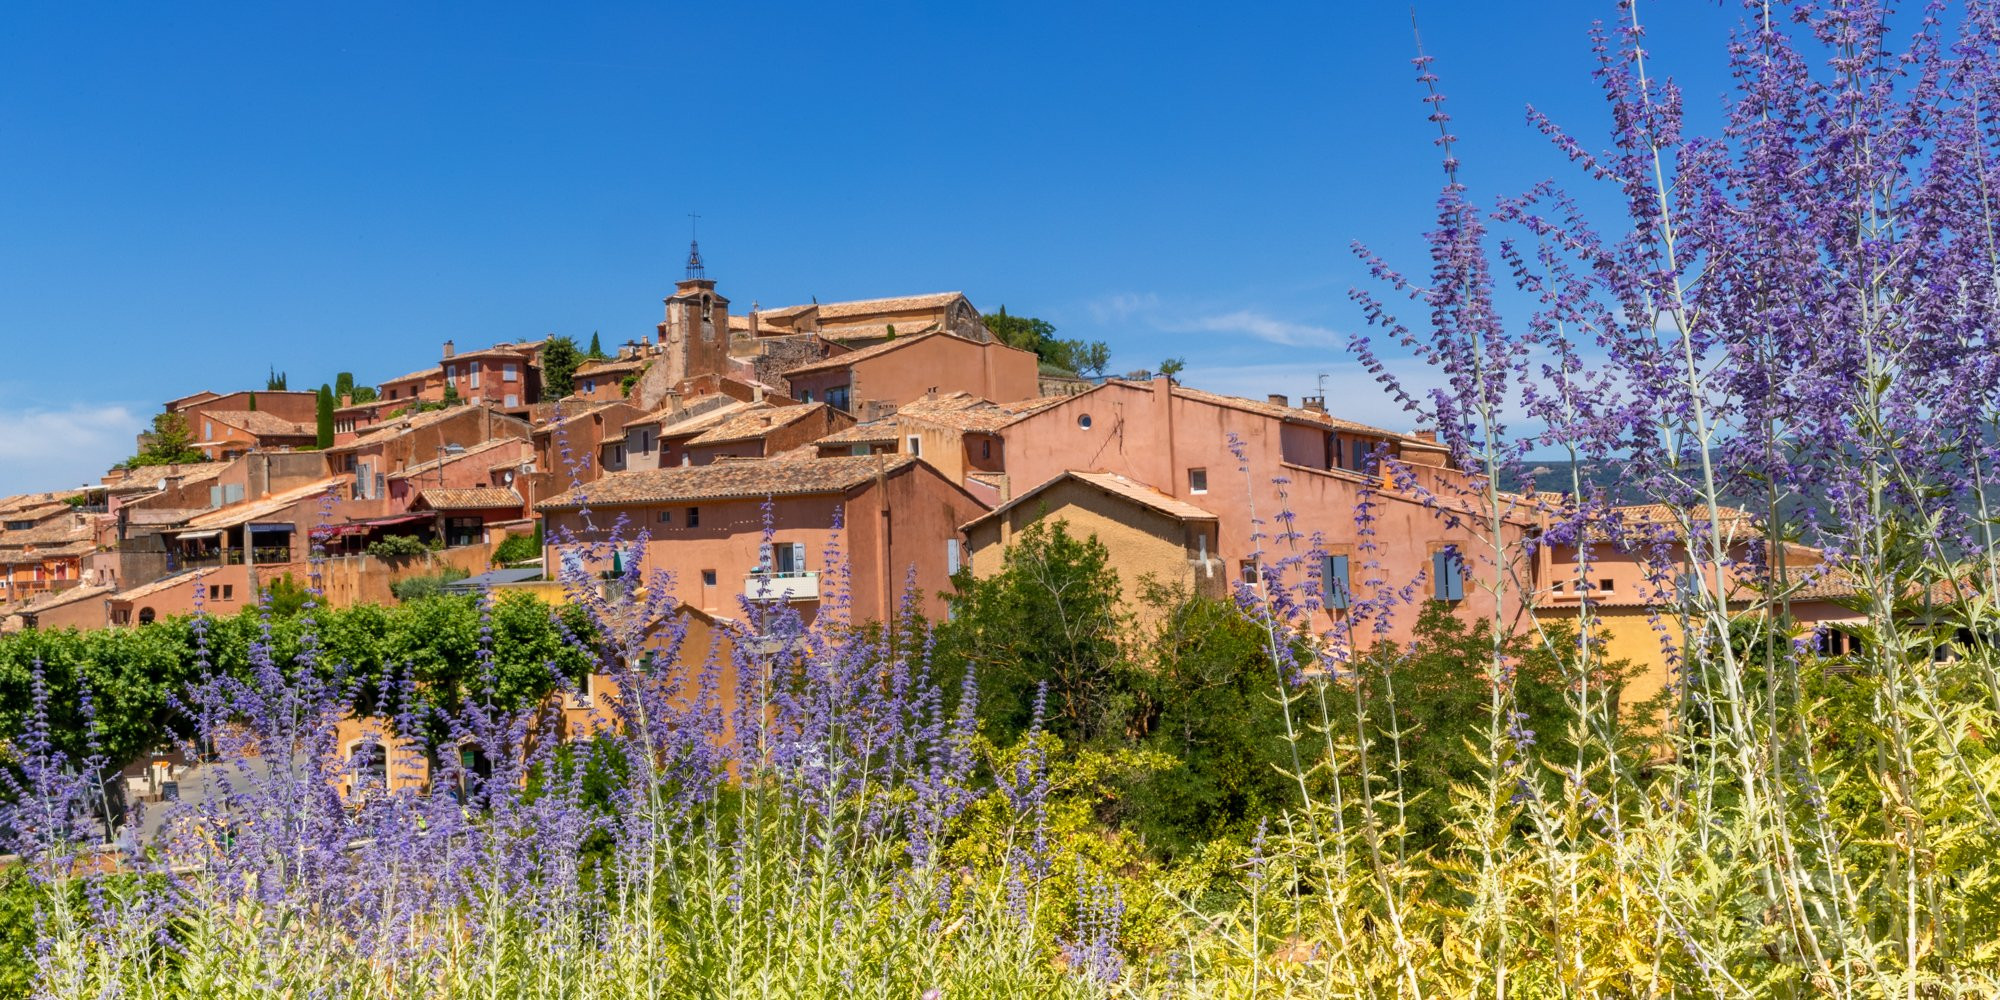 Roussillon Provençal village and lavenders panorama, France